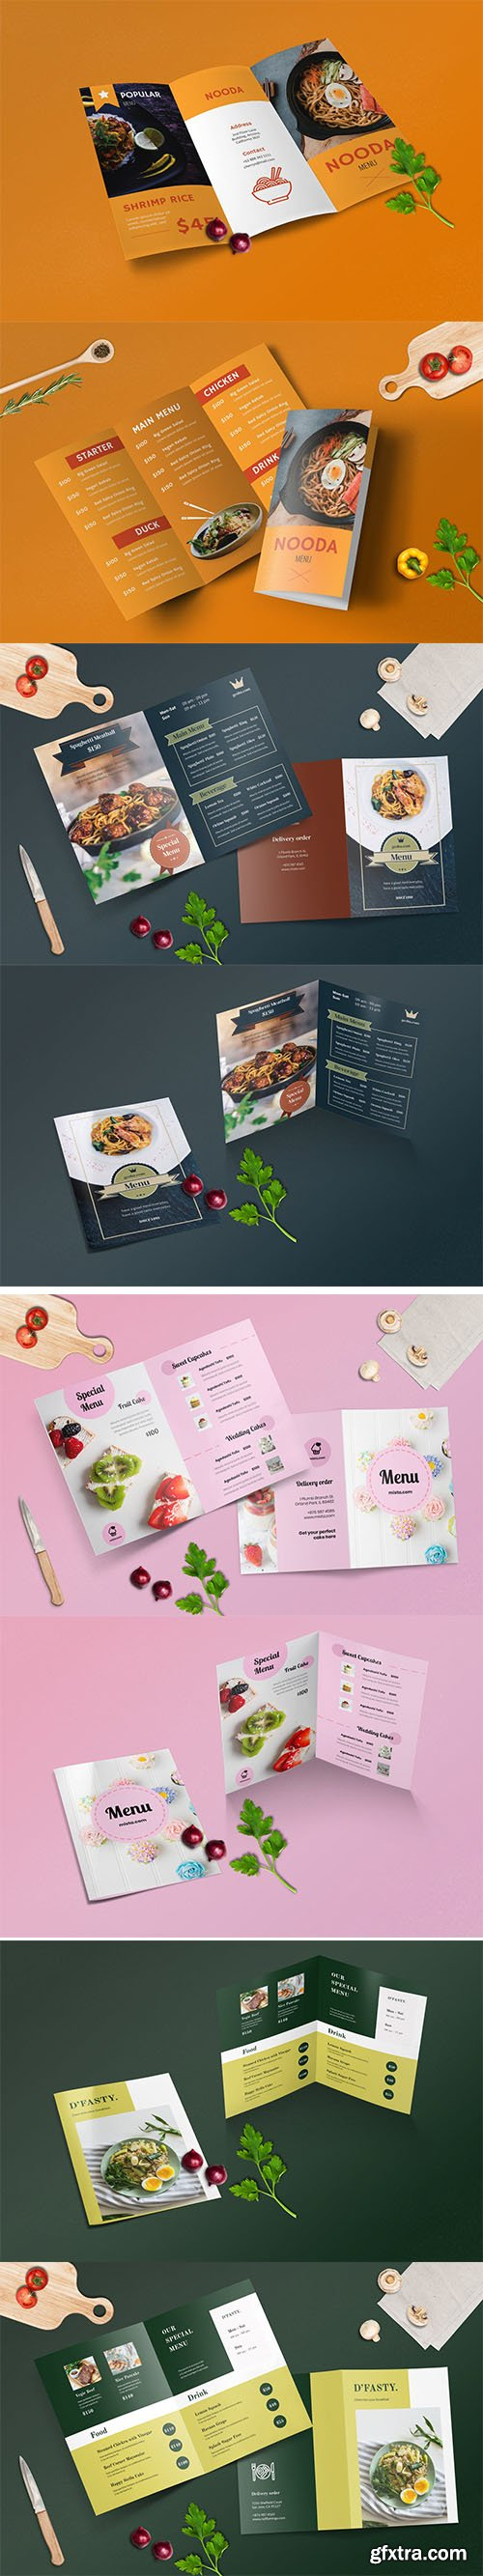 Bifold and Trifold Restaurant Menu Template Set